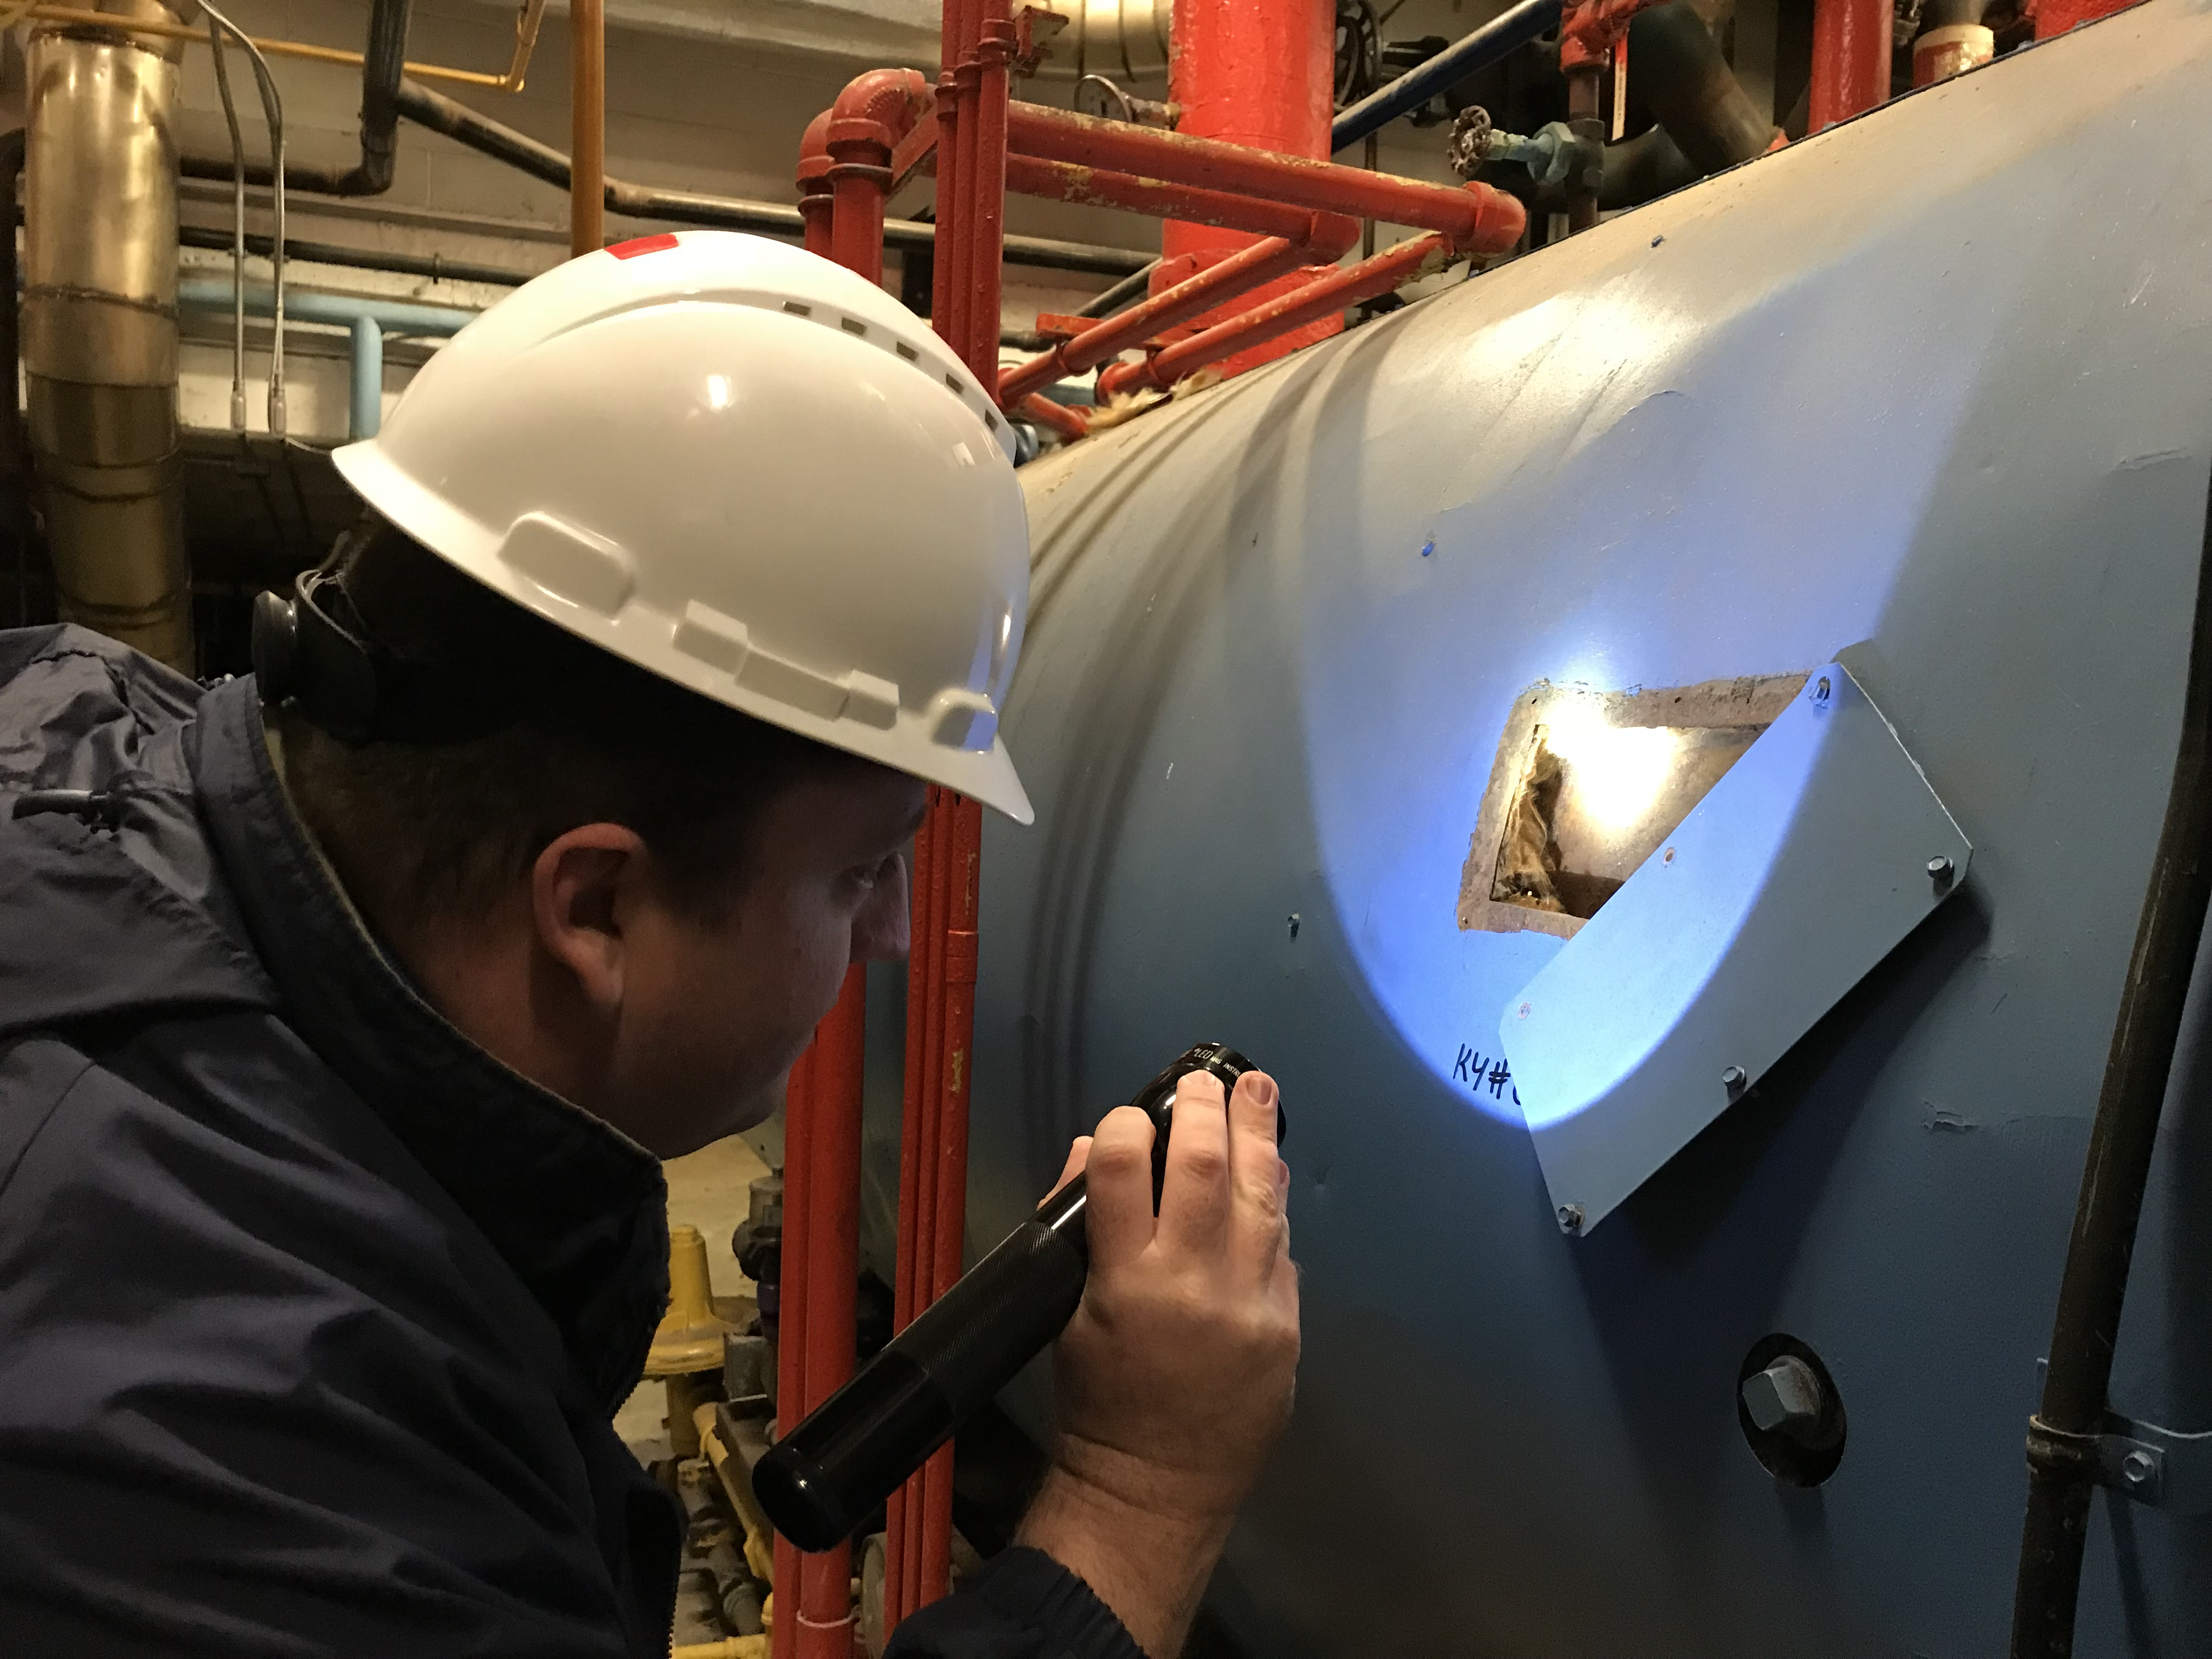 Inspecting boiler insulation. Photo by Roberta Burnes.